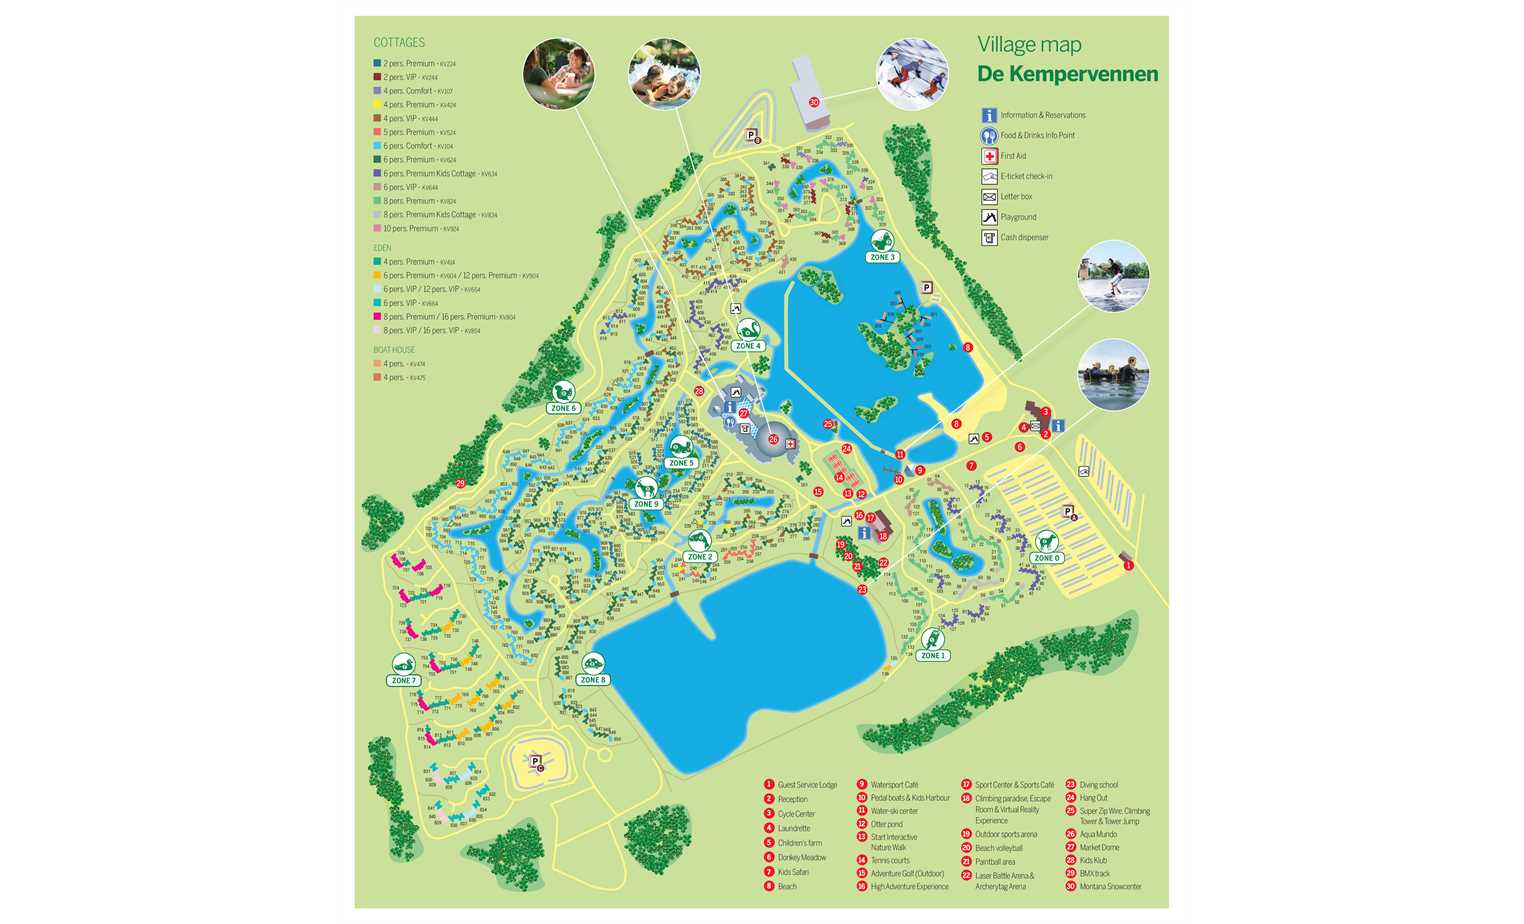 PX] Village map of Center Parcs De Kempervennen - ParkExplorer.com on